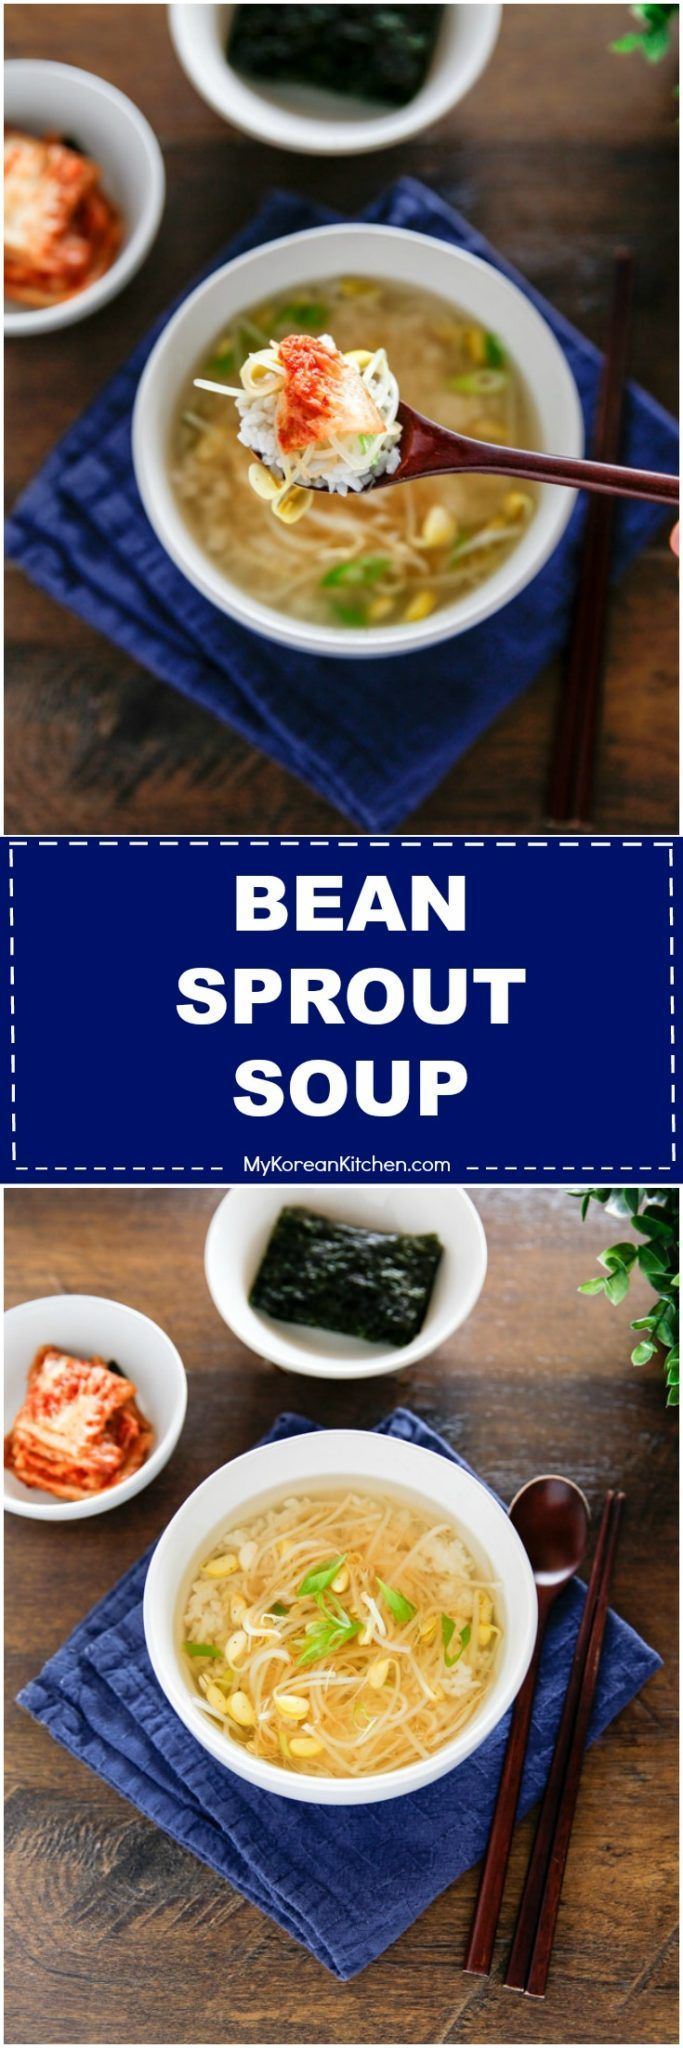 How to make Korean bean sprout soup. It's a popular hangover soup! | MyKoreanKitchen.com